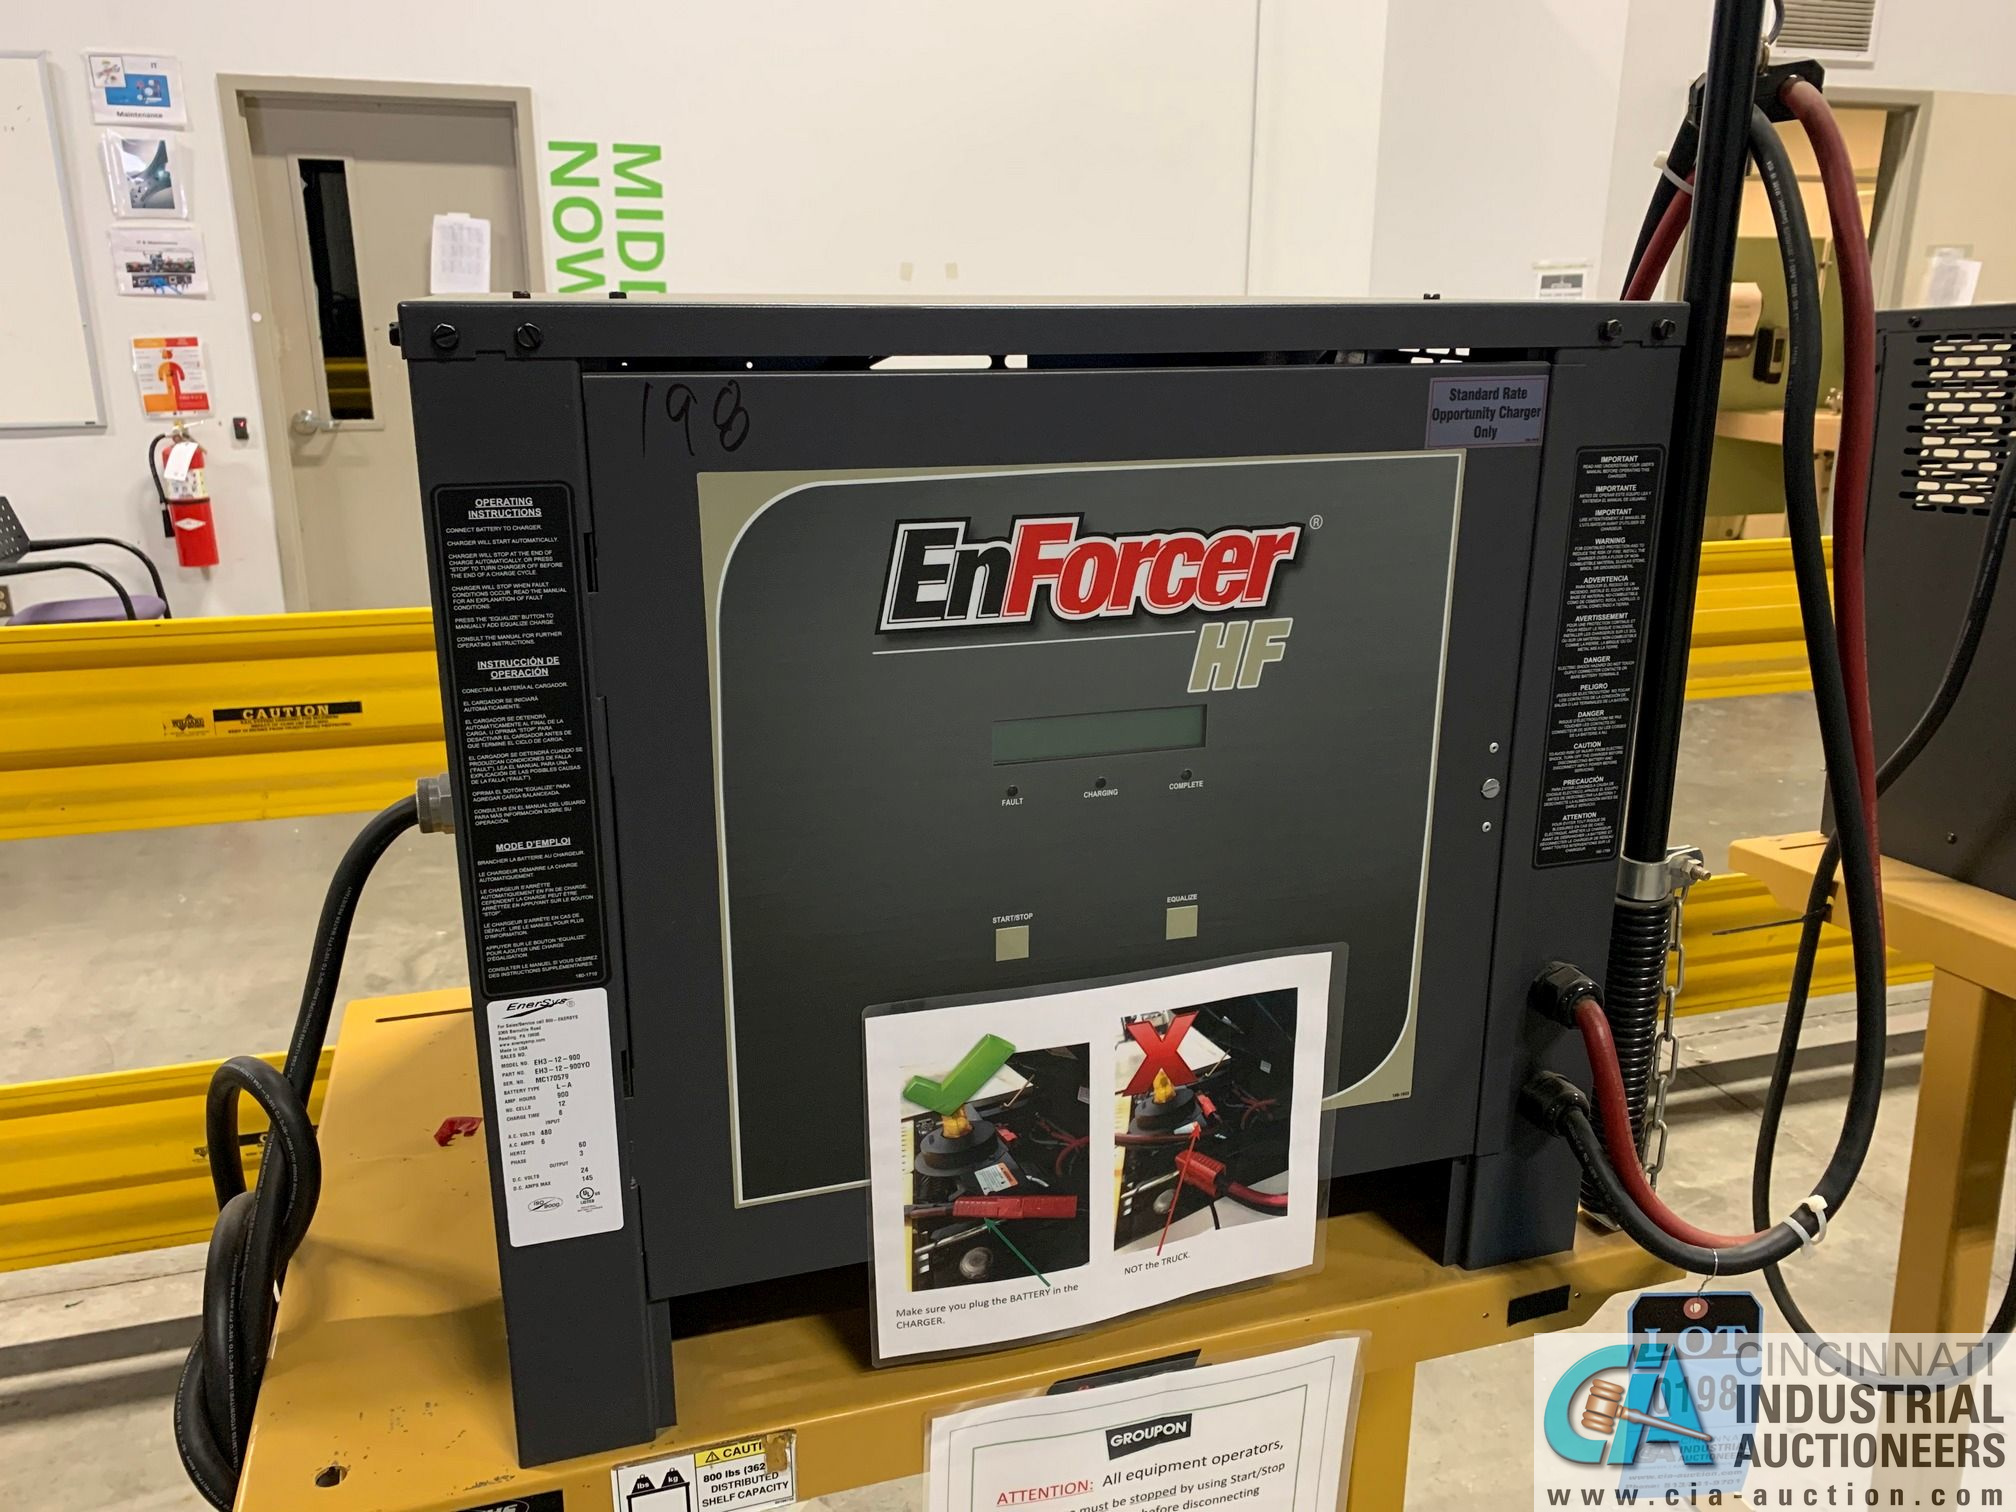 ENERSYS MODEL EH3-12-900 ENFORCER HF BATTERY CHARGER WITH STAND **LOCATED IN MAIN CHARGE AREA**